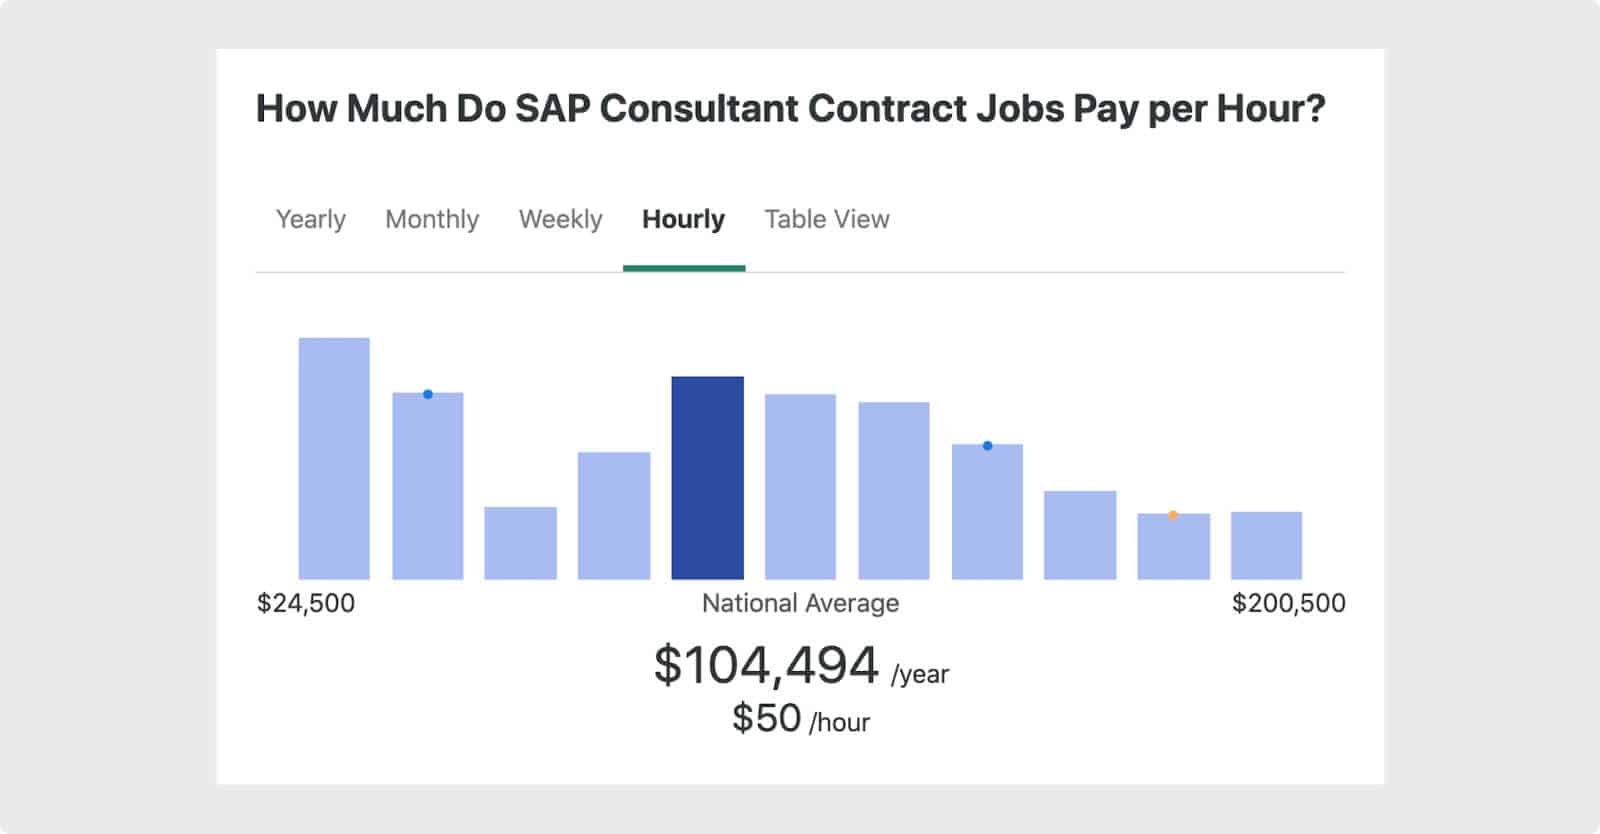 Average compensation for SAP consultants in the US.